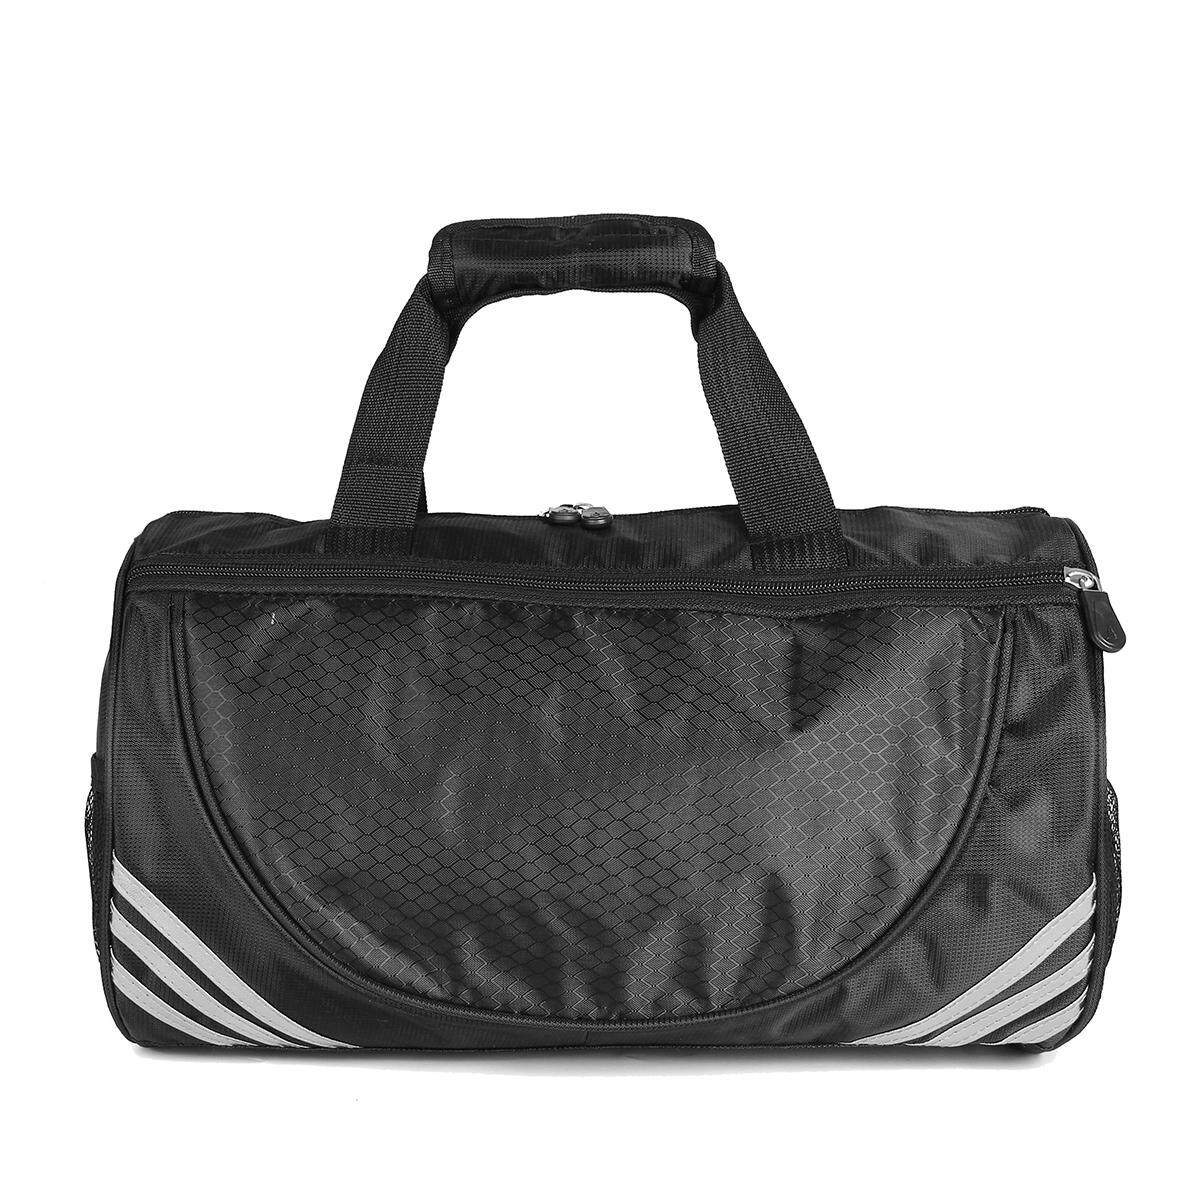 Sports Gym Travel Bags Yoga Bag Travel Duffle Bag Satchel Training Bags Backpack Silver 40x20x20cm - Intl By Autoleader.